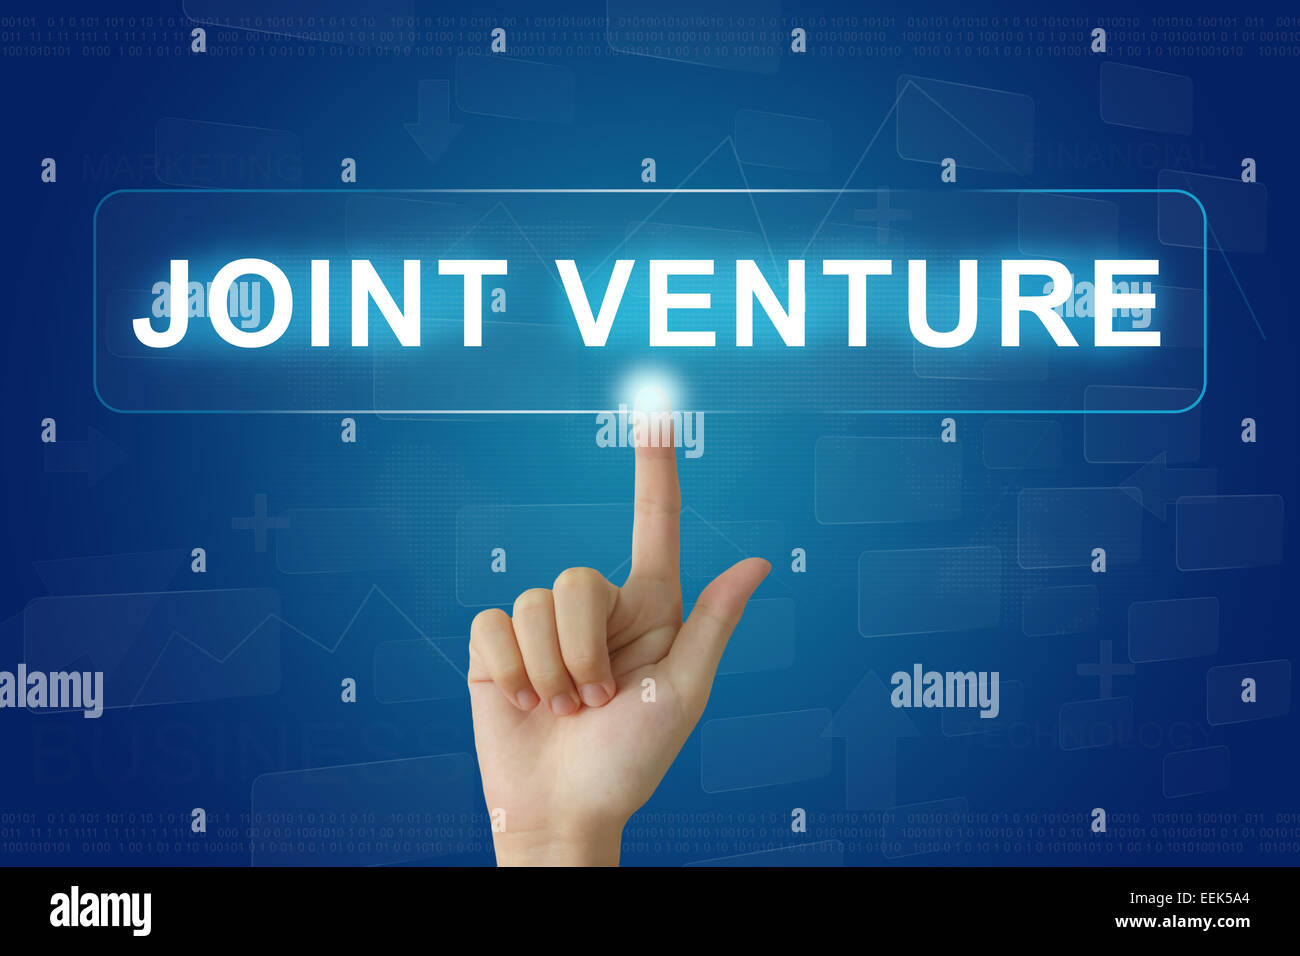 hand press on joint venture button on virtual screen - Stock Image